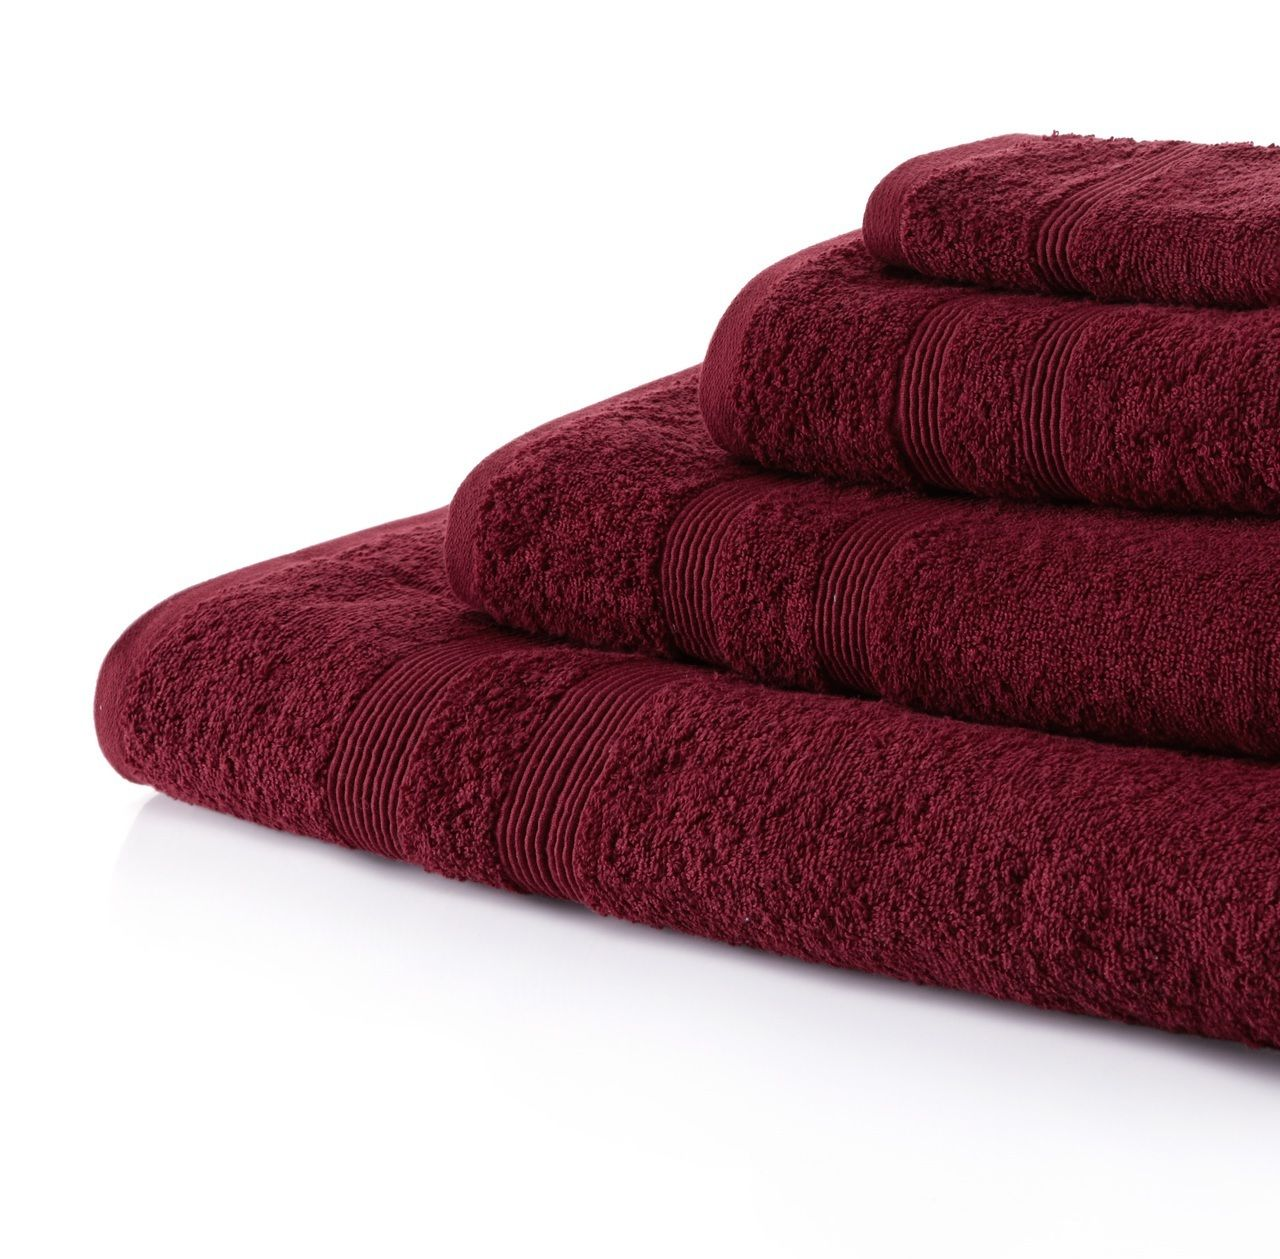 Egyptian Cotton 500g Towels in 4 Colours - 2 Sizes